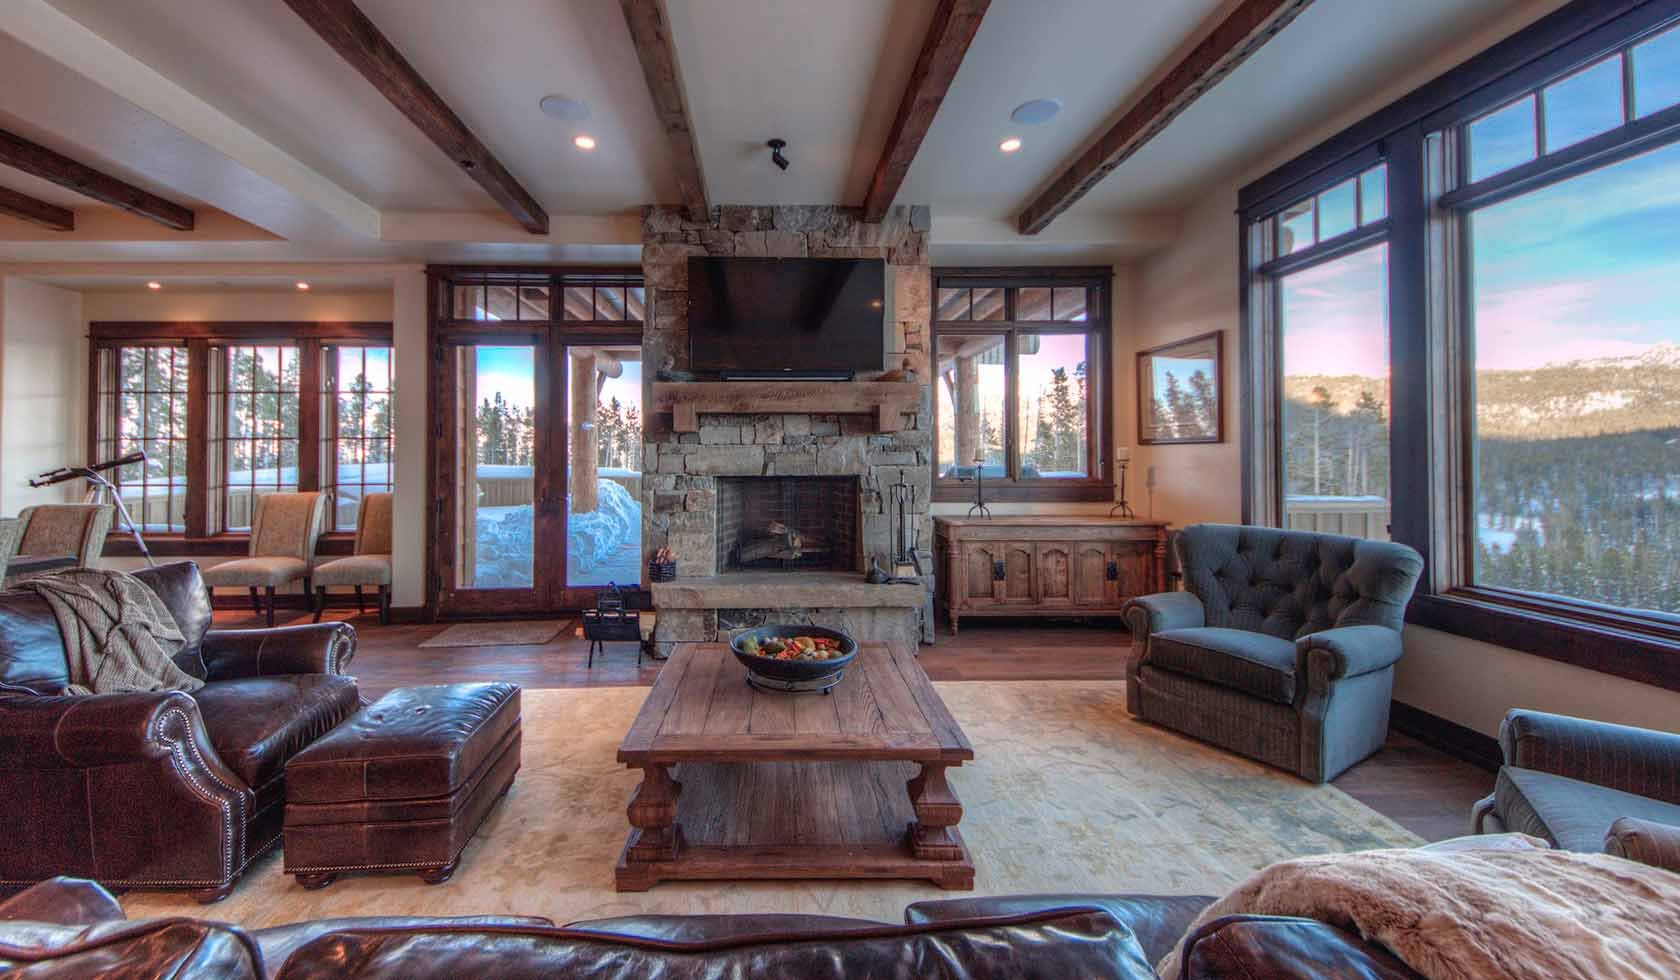 Cowboy Heaven Luxury Suite 7A profile image